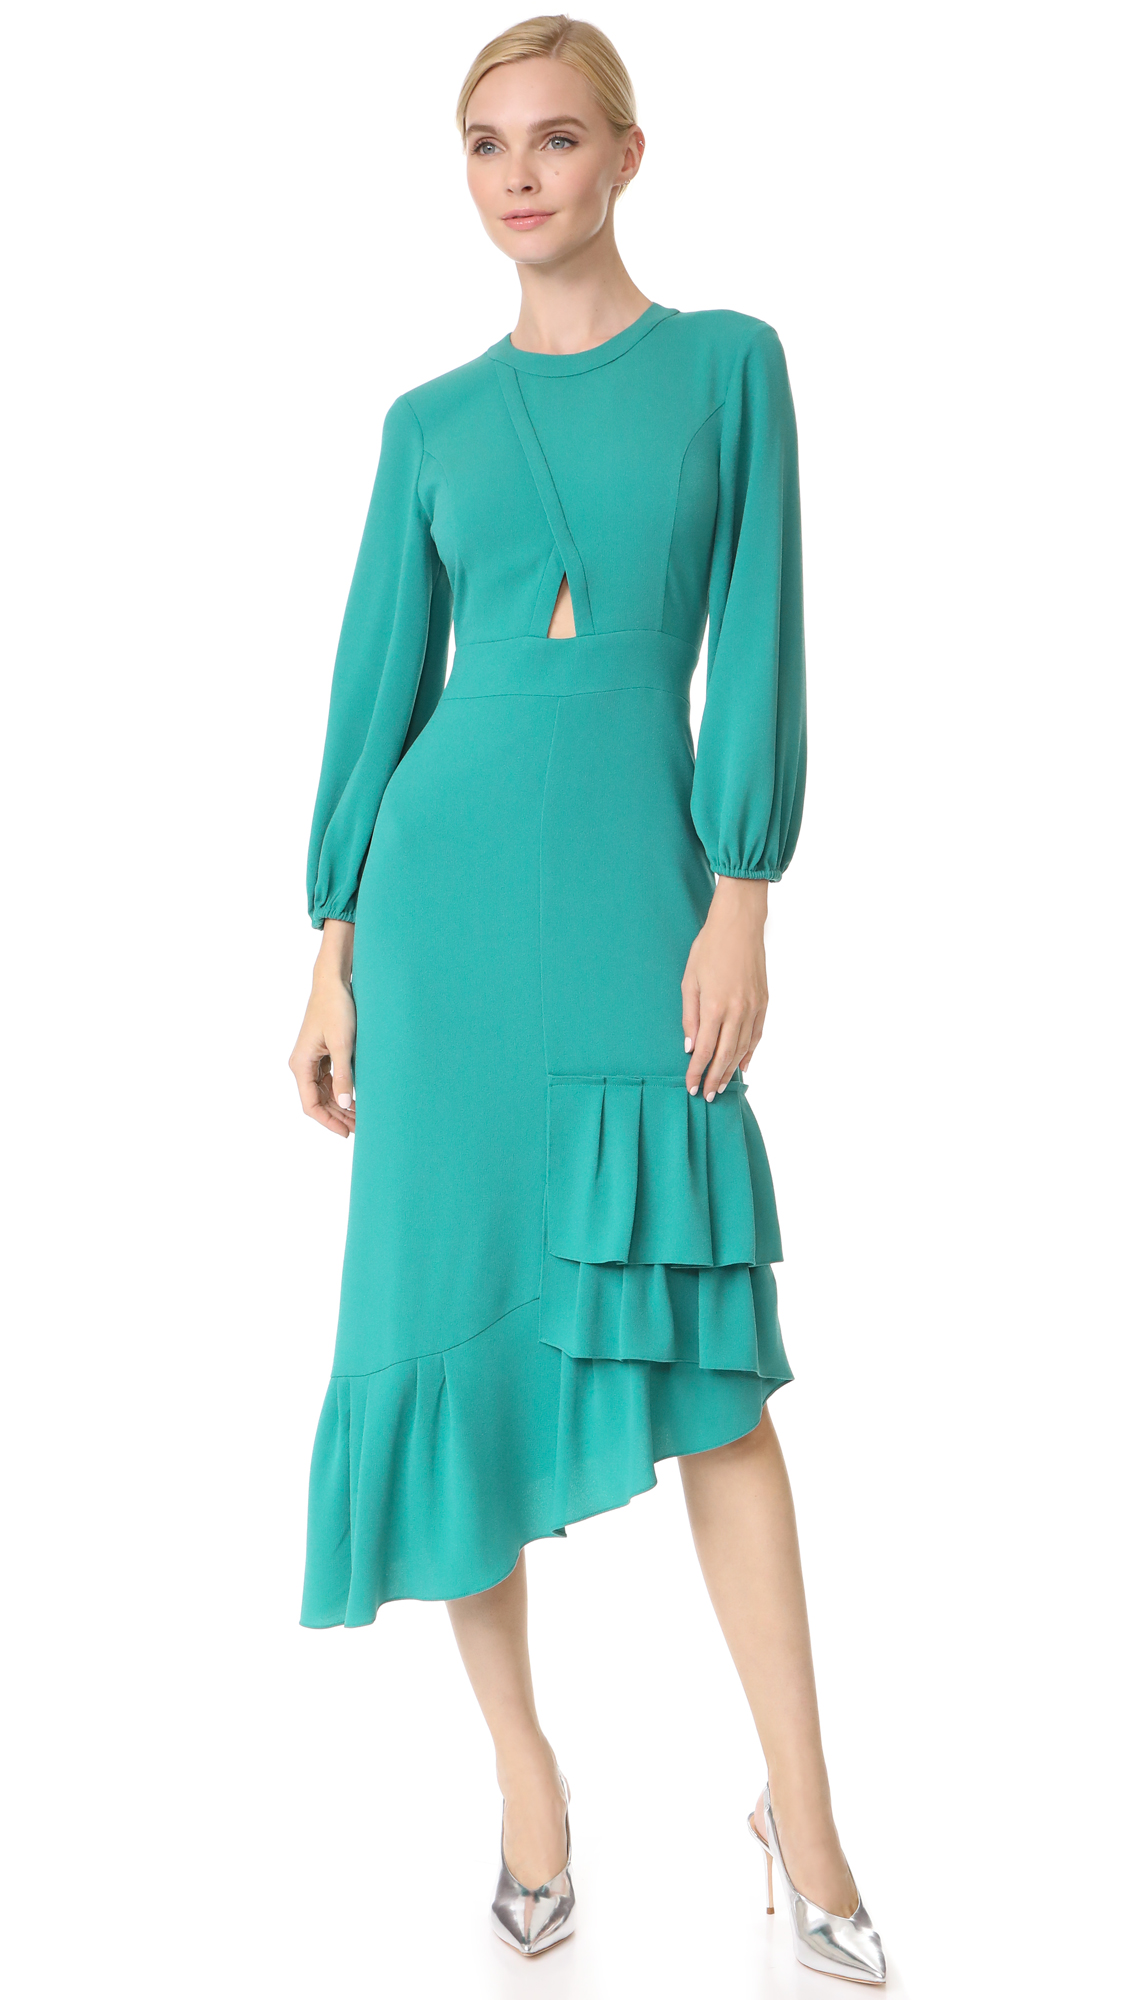 Tibi Cutout Ruffle Dress